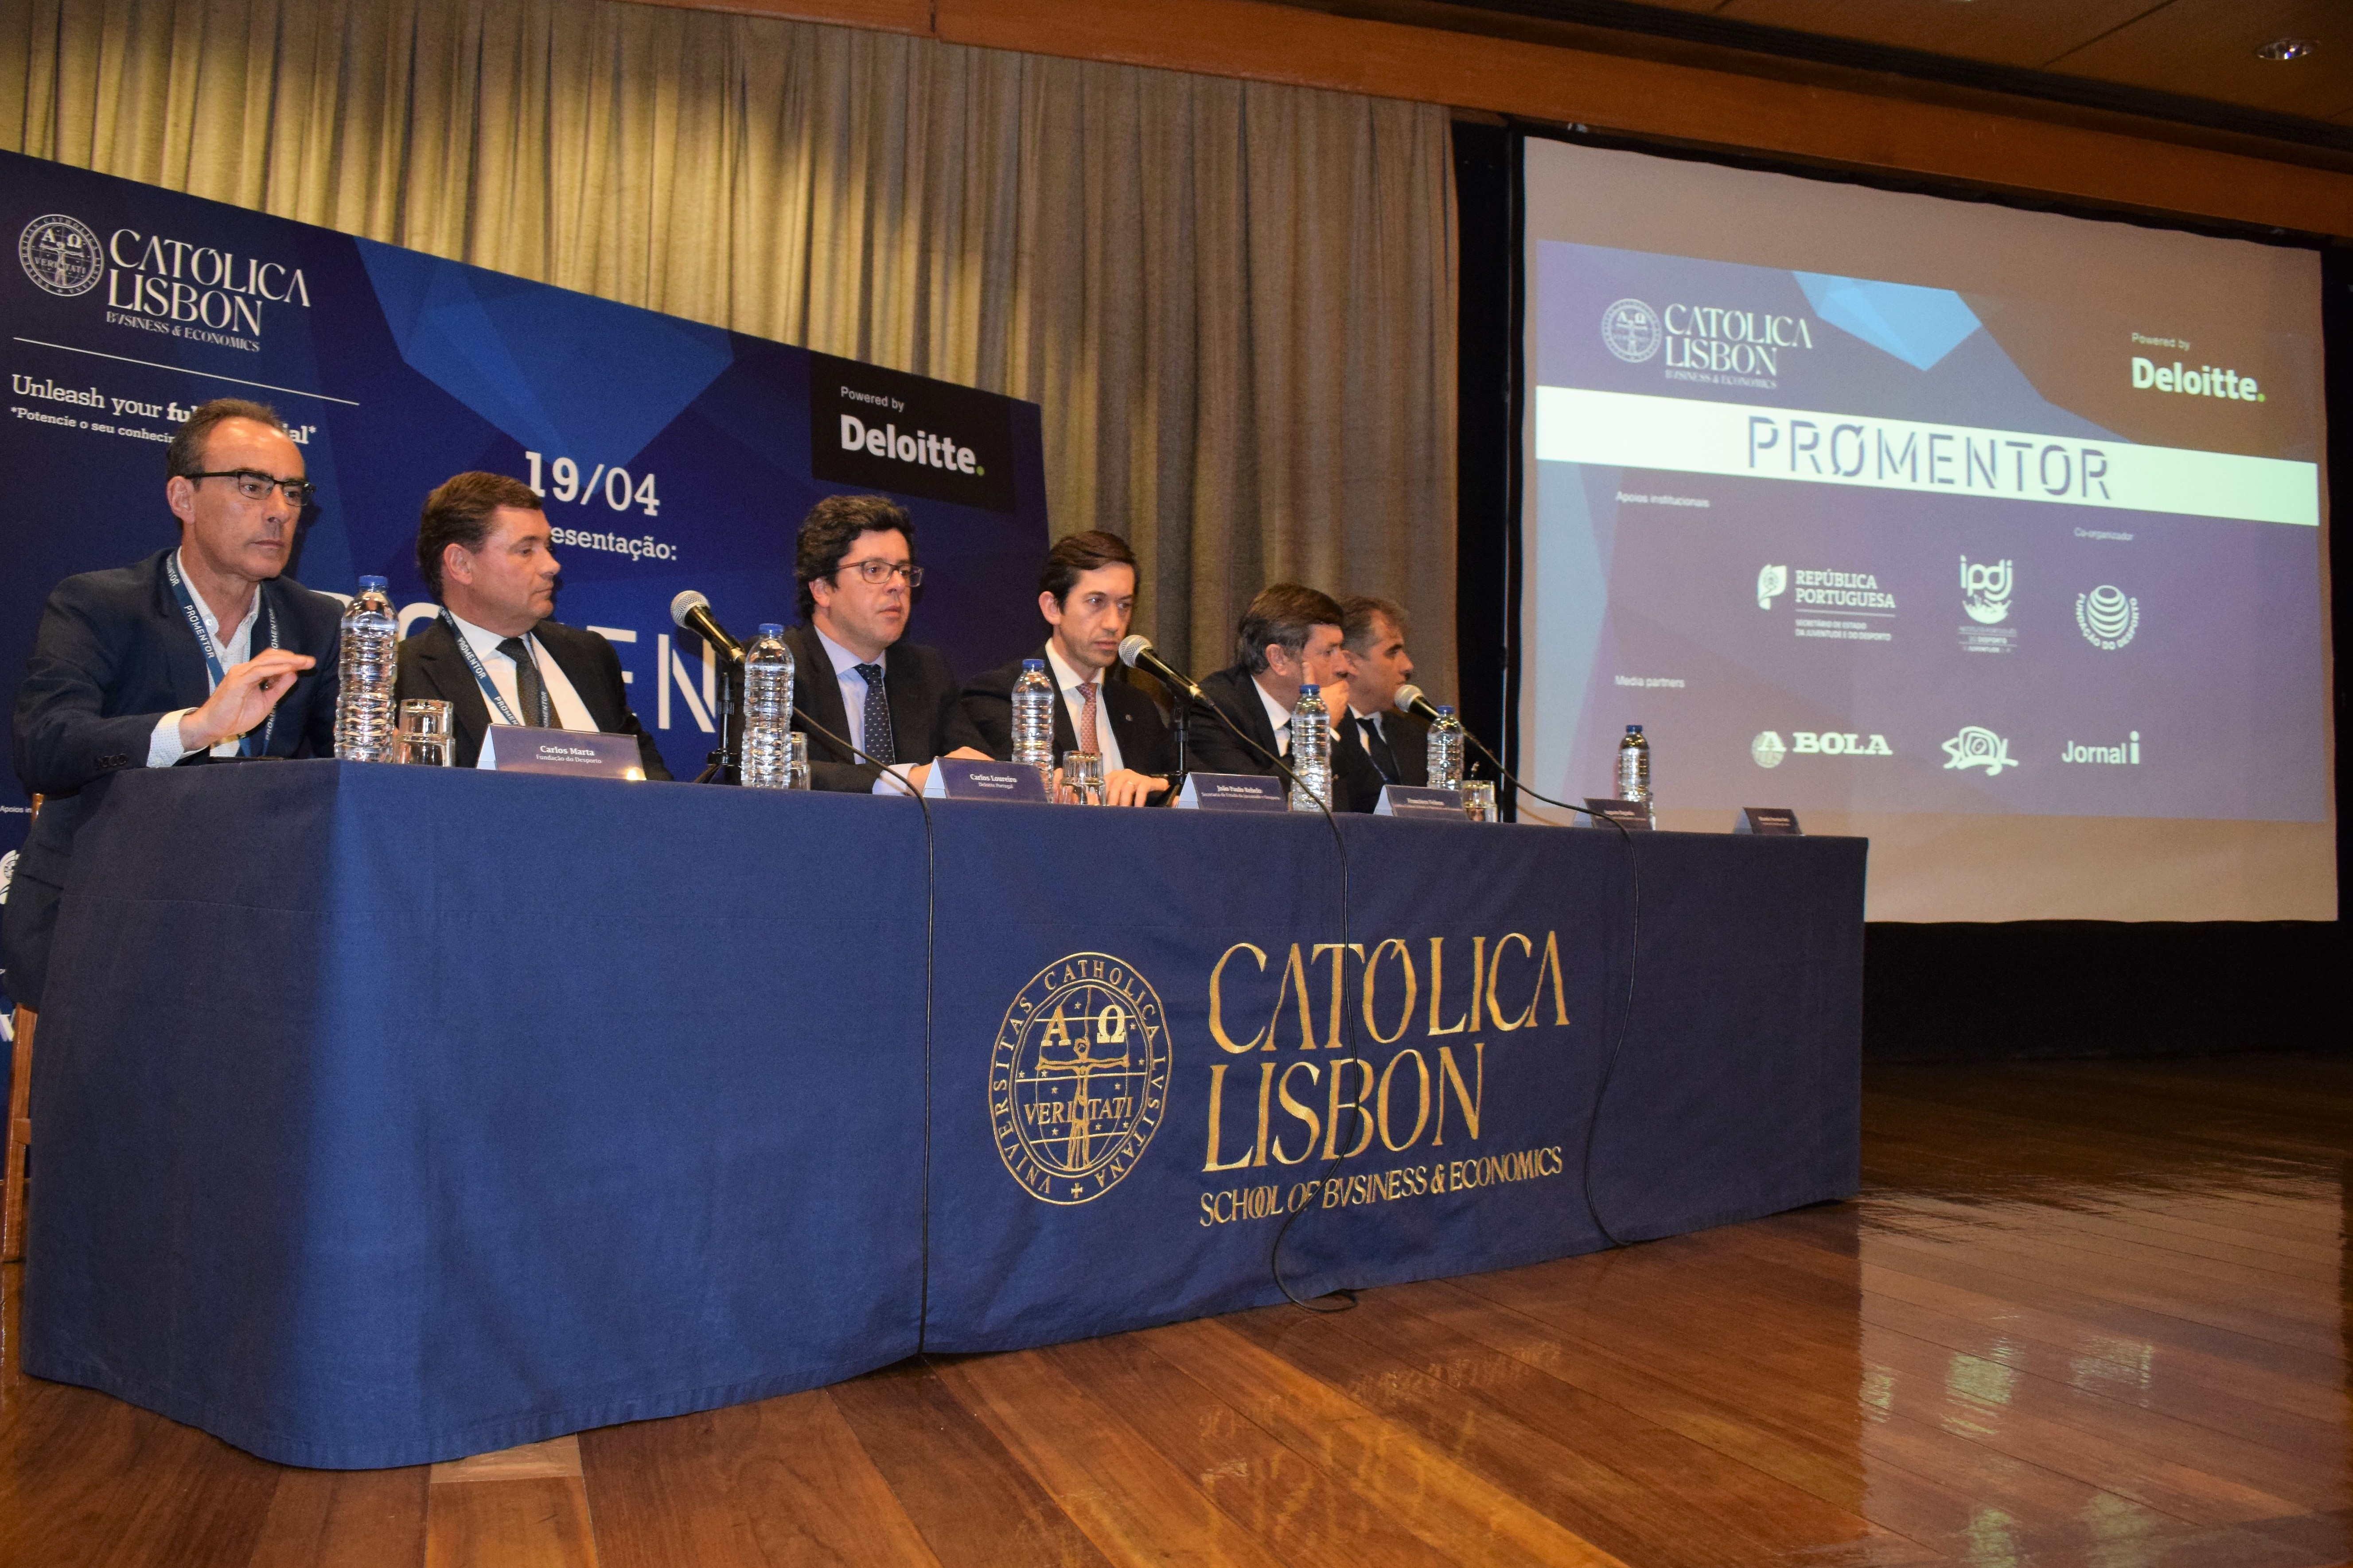 Fundação do Desporto, Católica Lisbon School of Business & Economics e Deloitte apresentam PROMENTOR DESPORTO